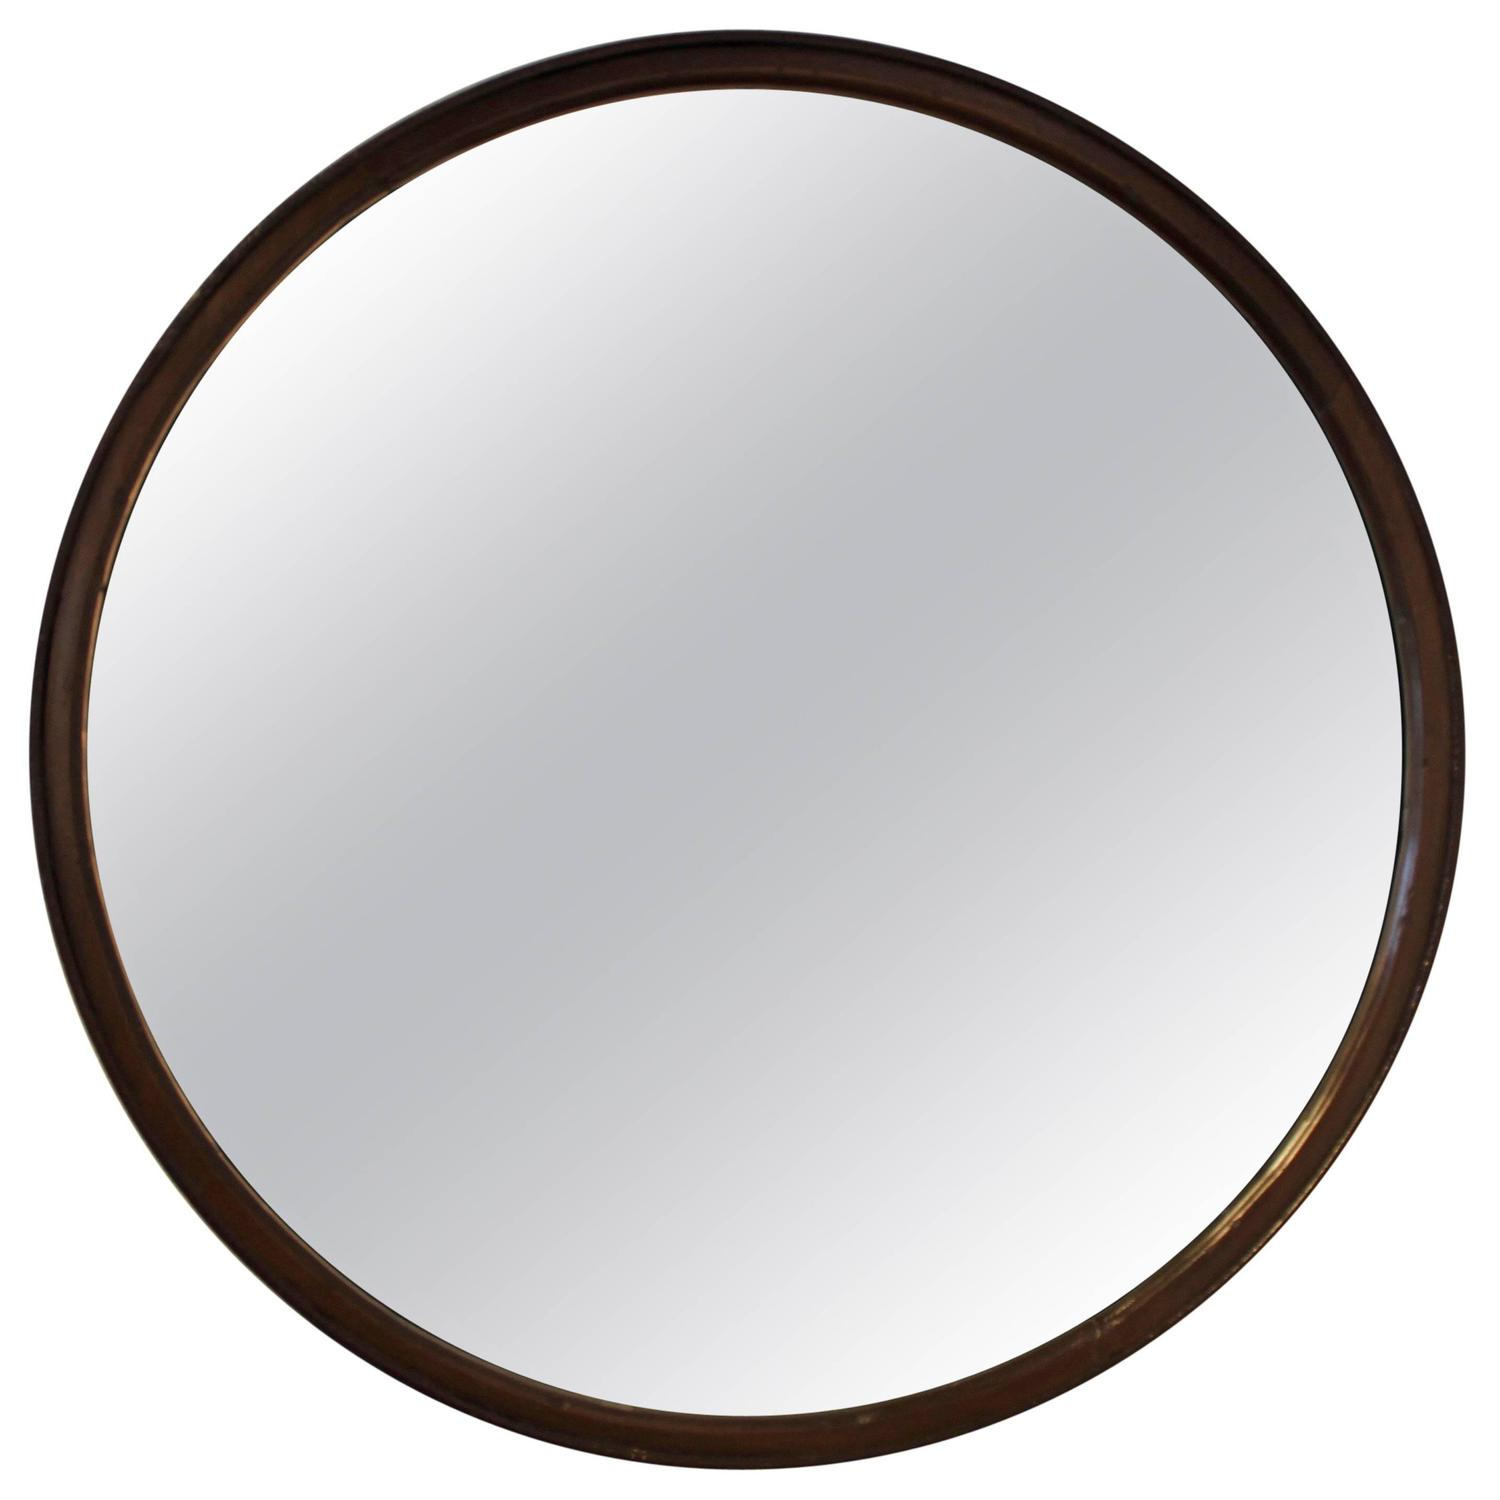 Industrial Wheel Round Mirror For Sale At 1stdibs